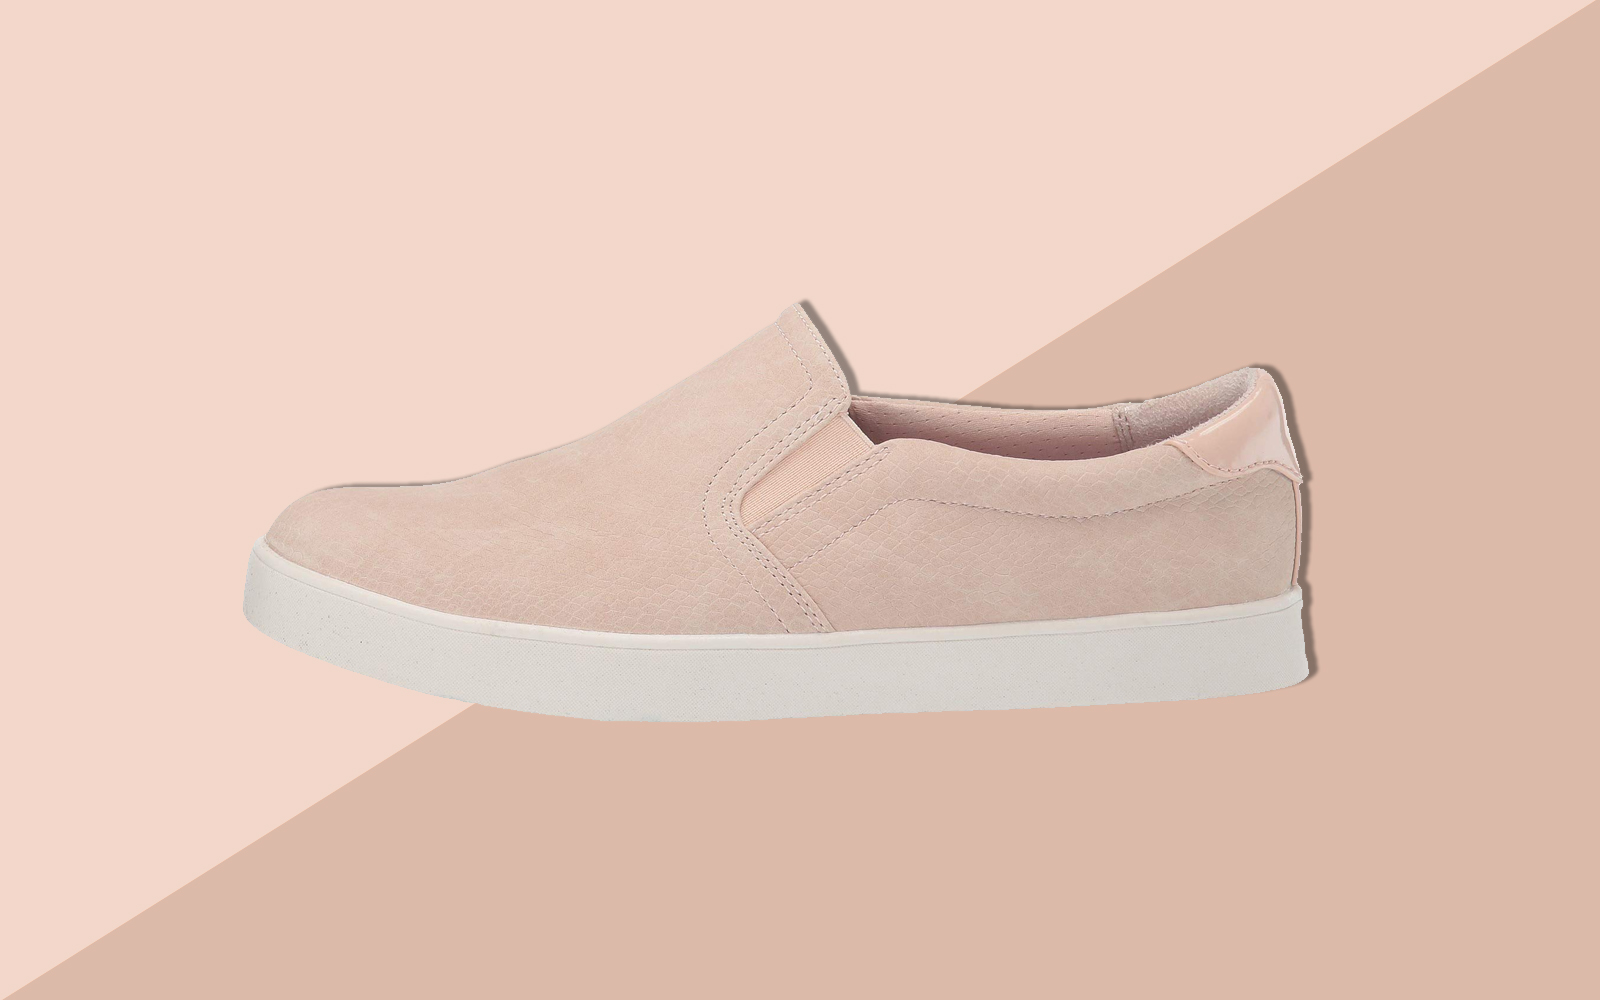 Dr. Scholl's Madison Sneaker Is the Comfortable Shoe You Need